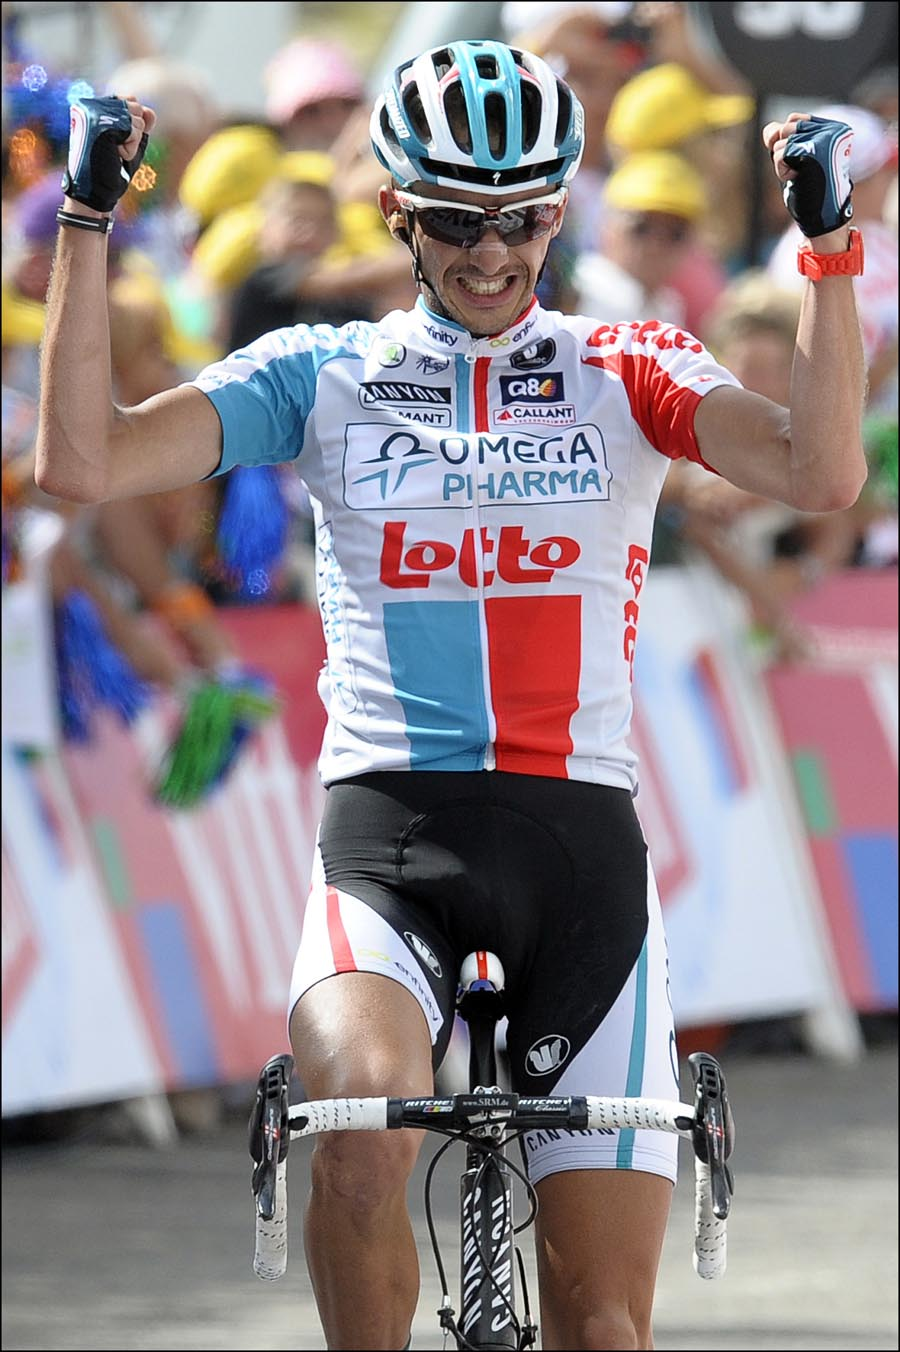 Jelle Vanendert wins, Tour de France 2011, stage 14